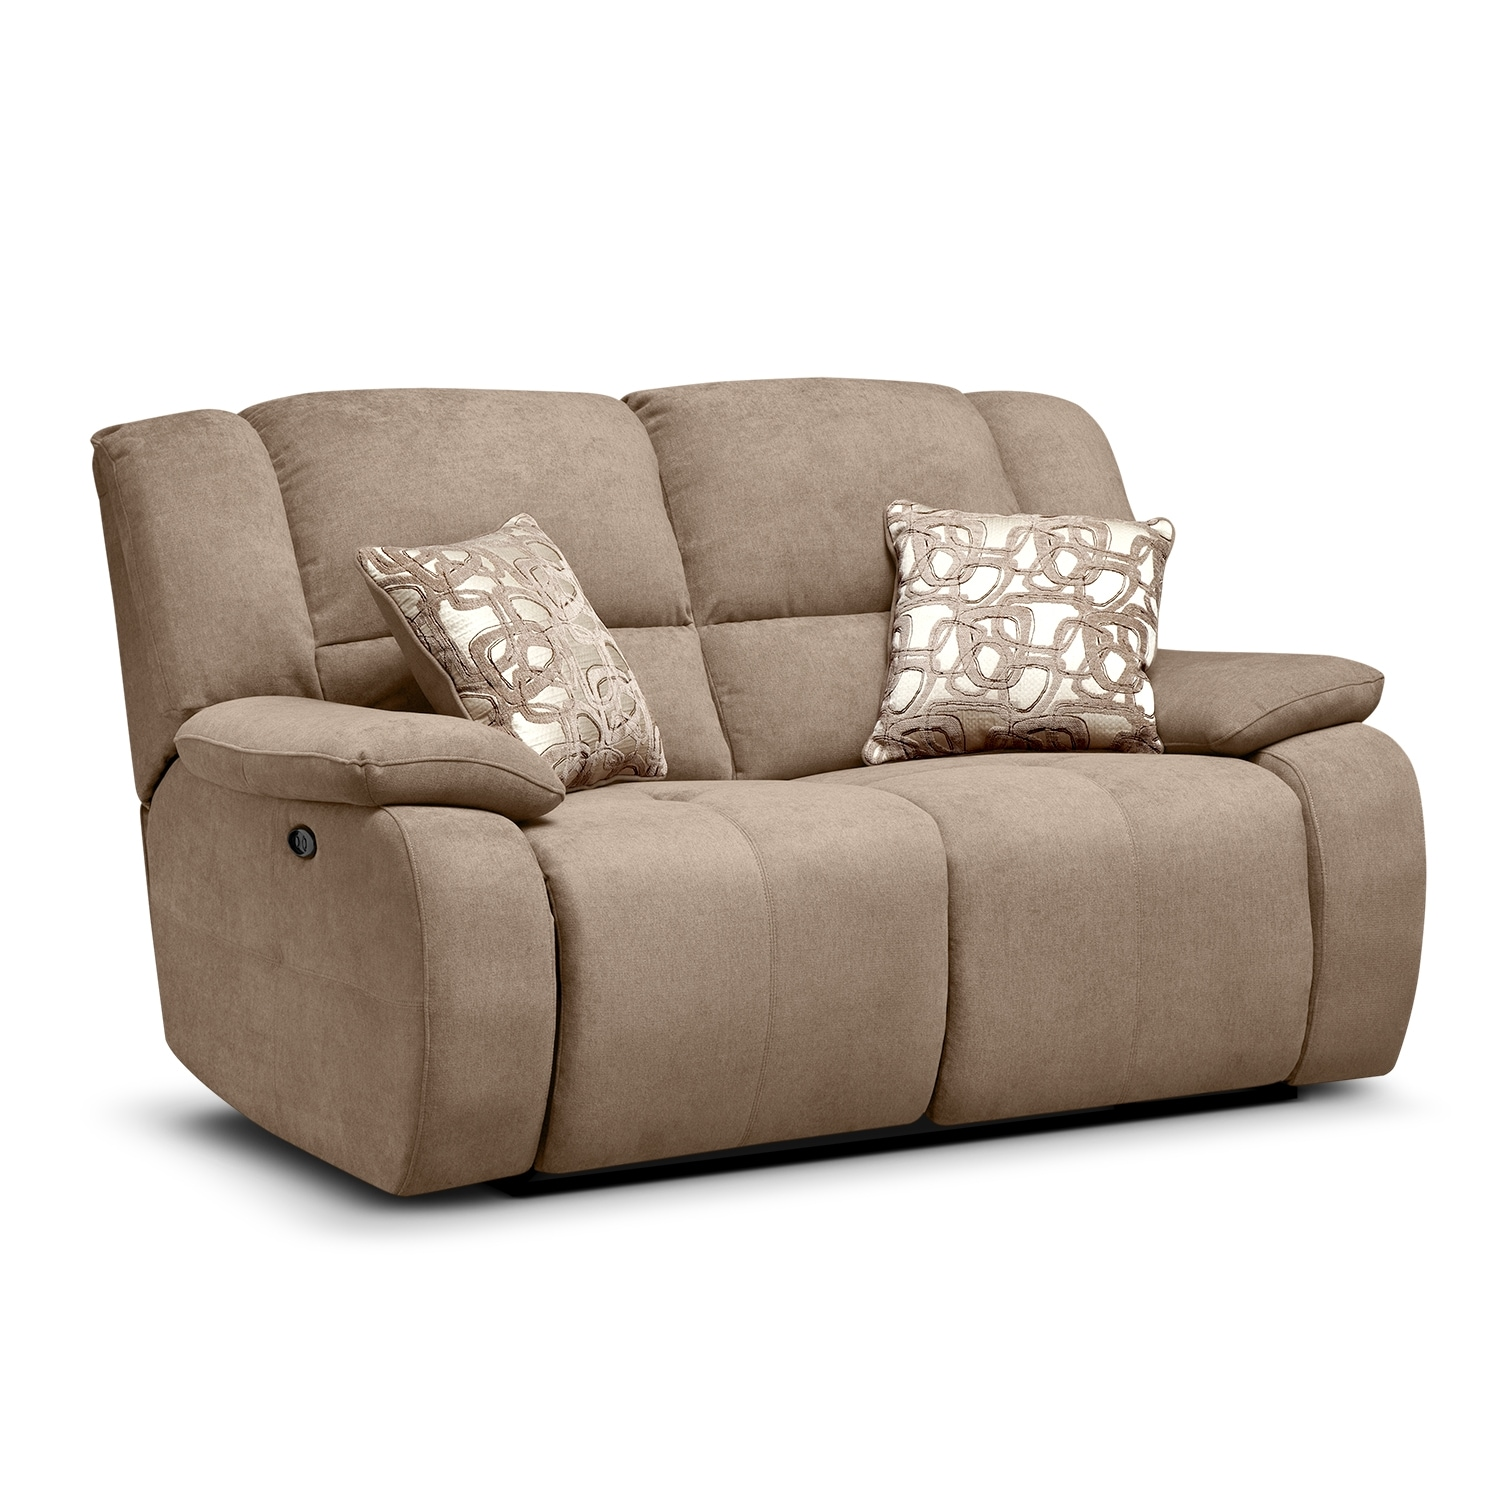 Value city furniture Loveseats that recline